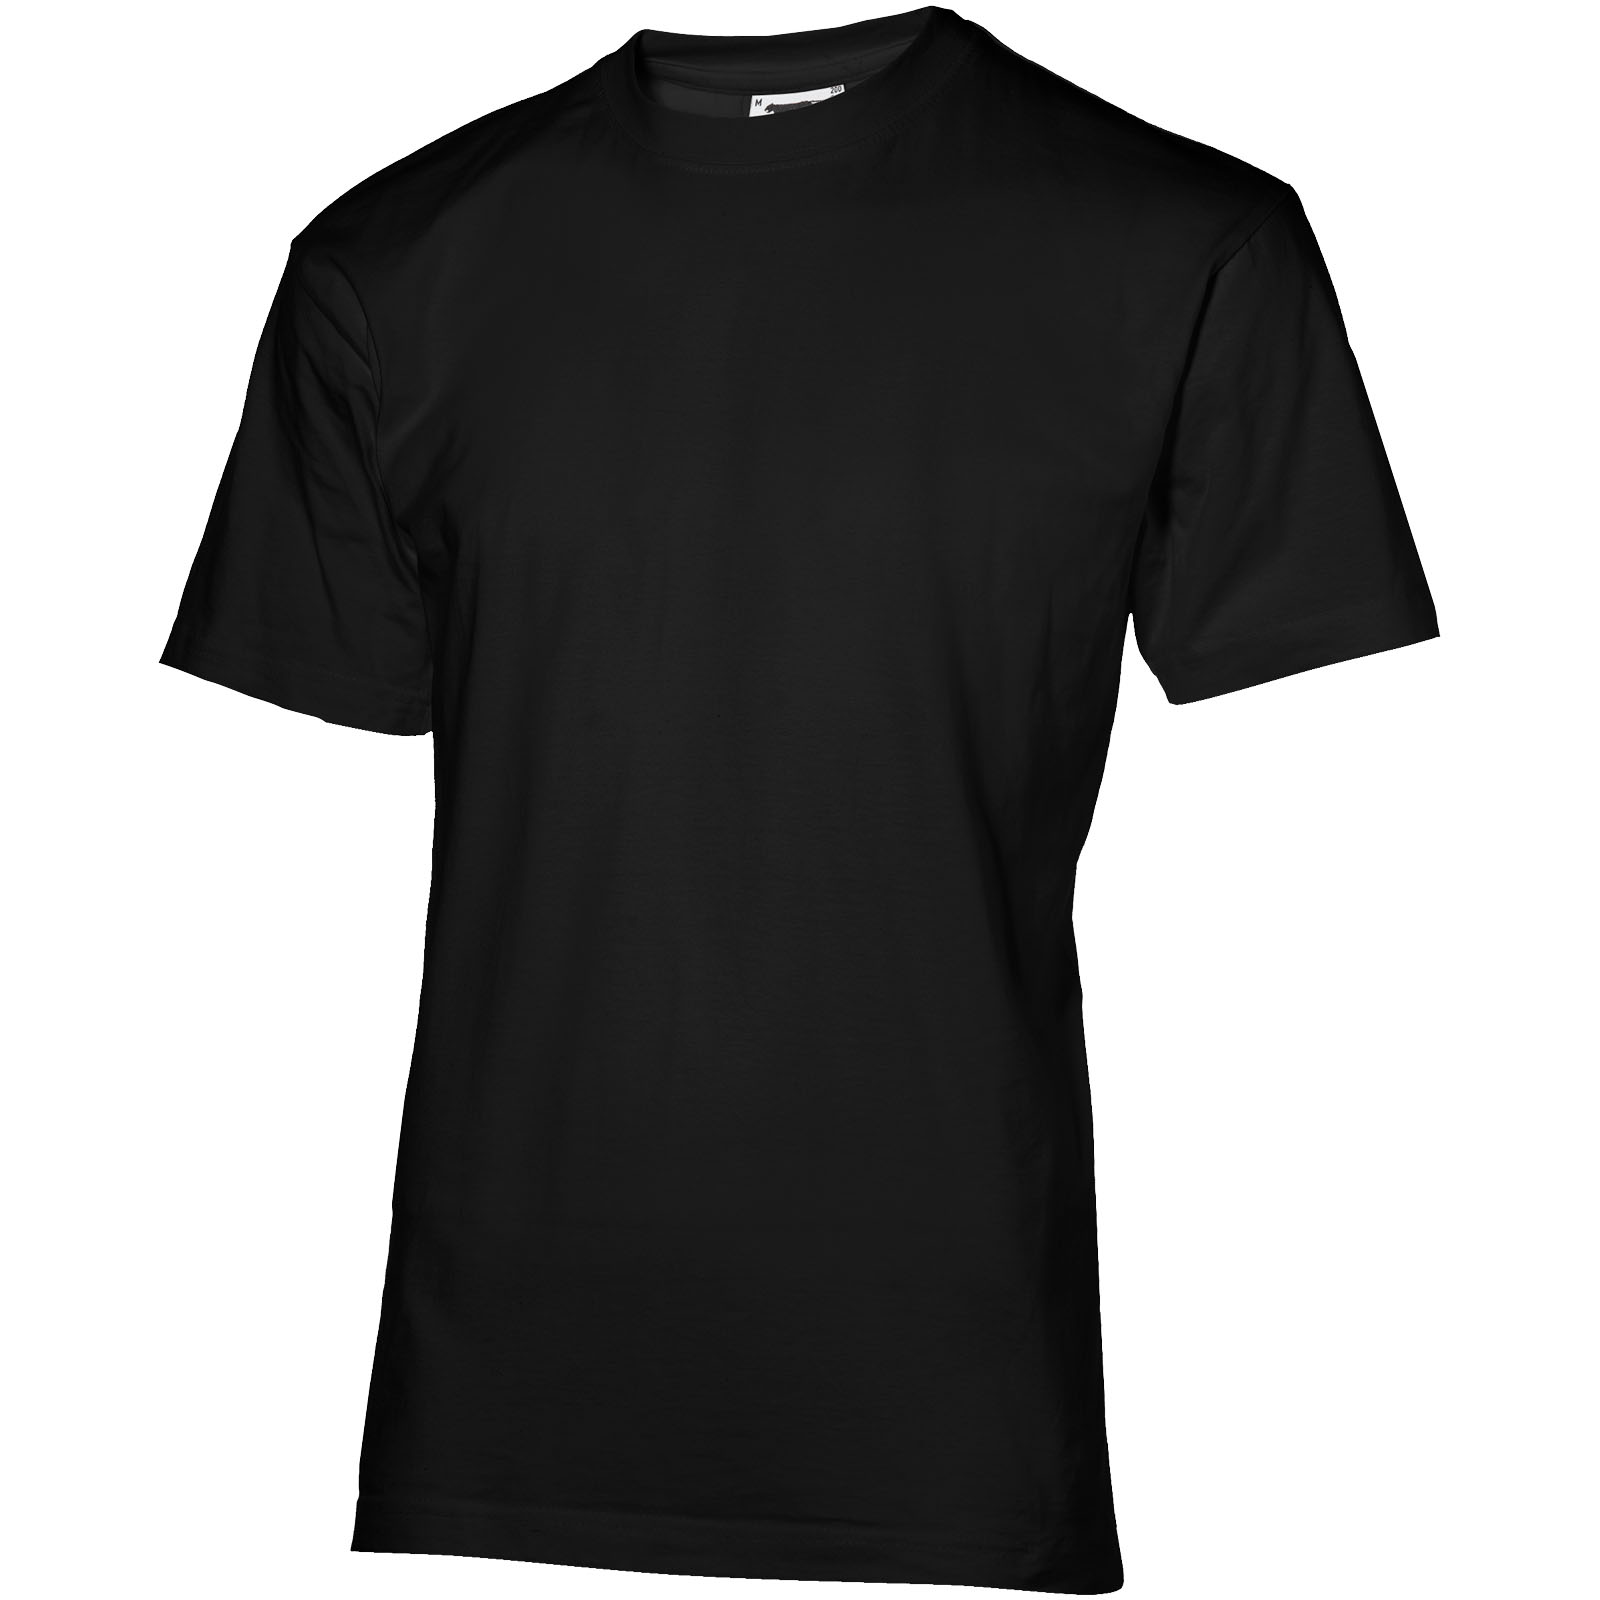 33S06 Return Ace kortærmet unisex t-shirt i Ensfarvet sort